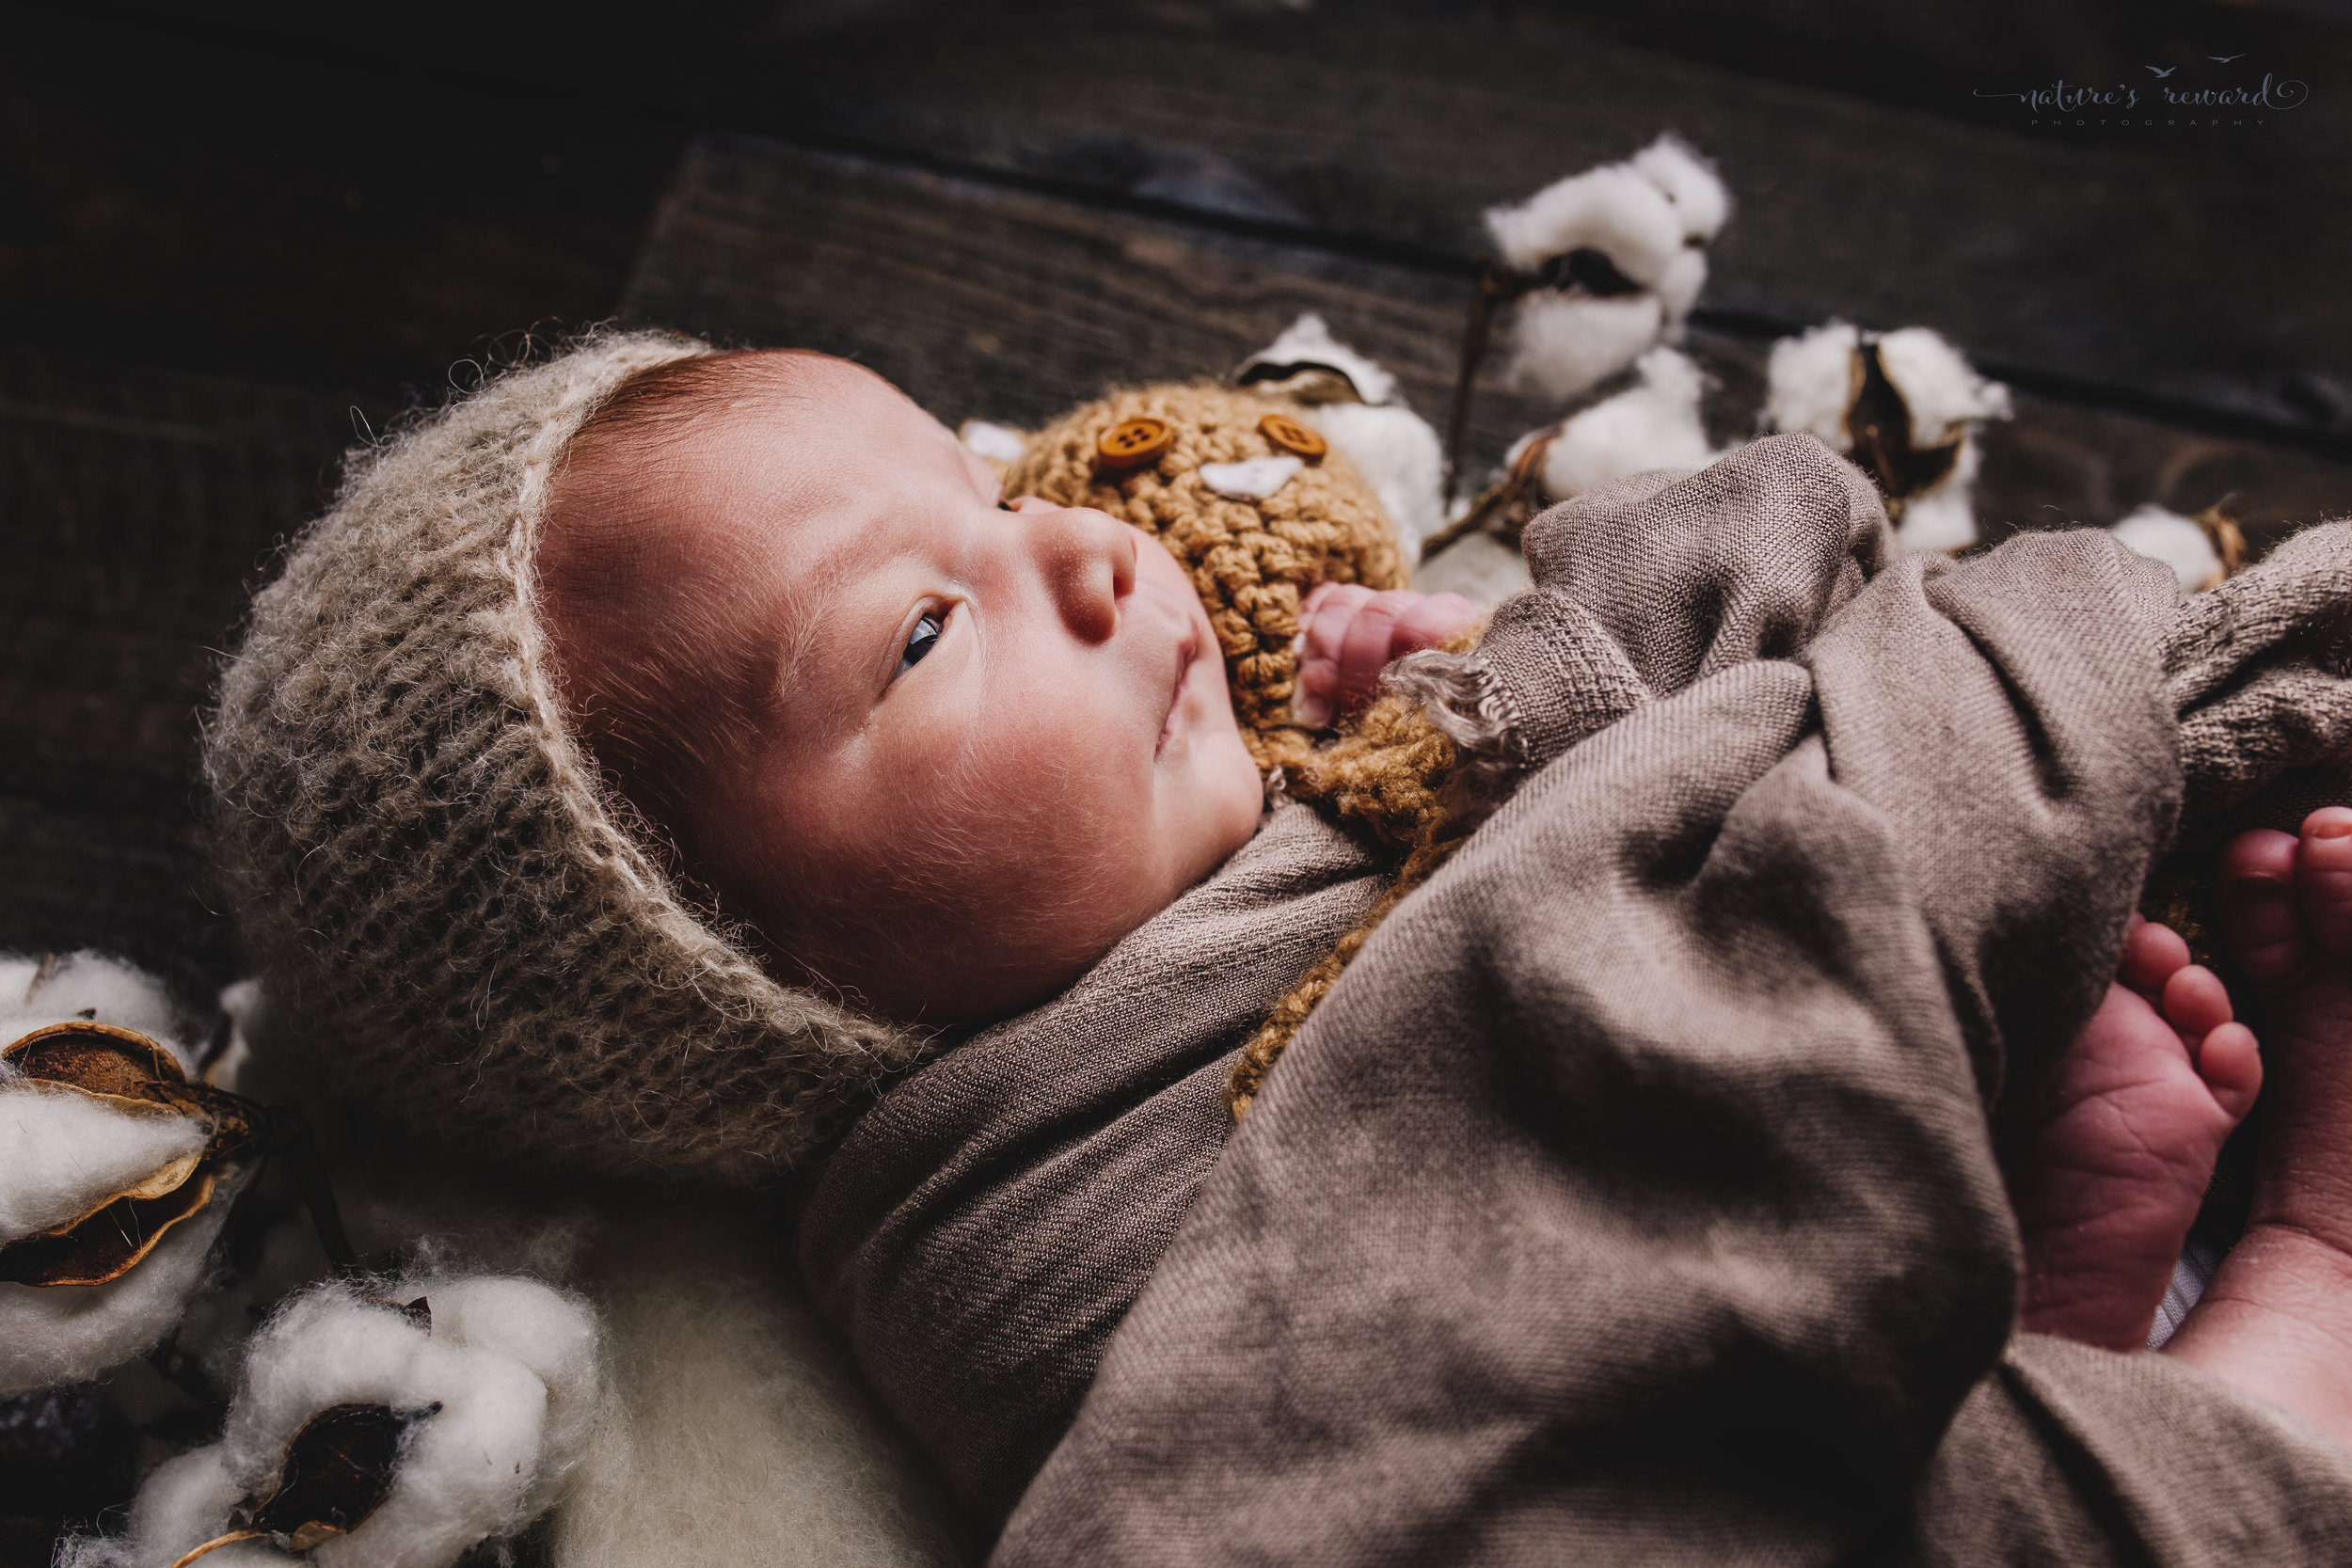 A newborn baby boy on a cotton blossom wreath and a bed of cotton swaddled and wearing a bonnet on a wood floor back drop -a portrait by Nature's Reward Photography